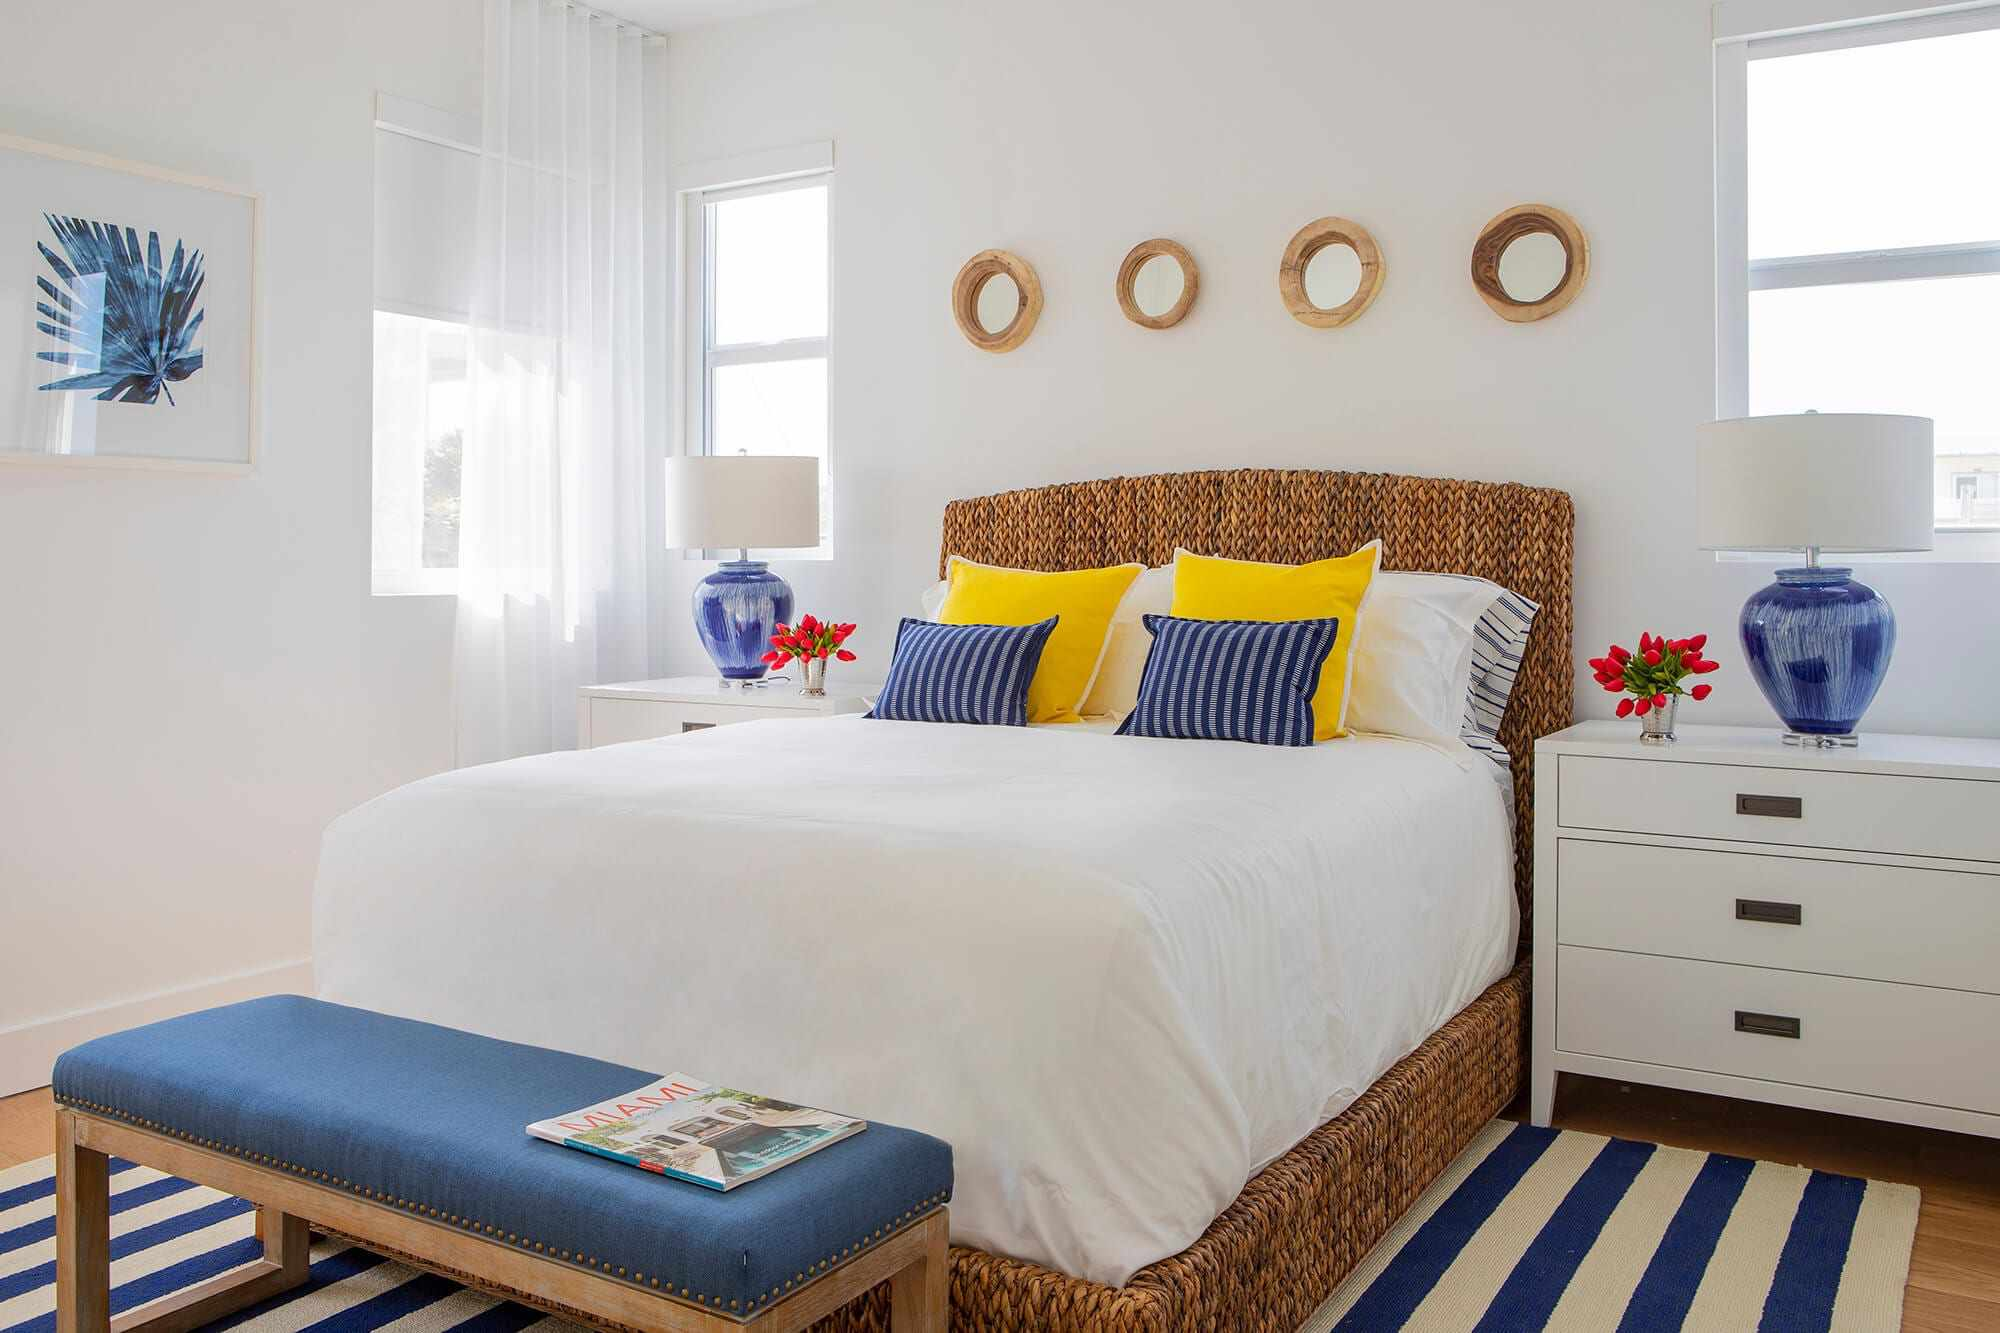 primary bedroom with white walls and bed, with pops of yellows, blue, and red